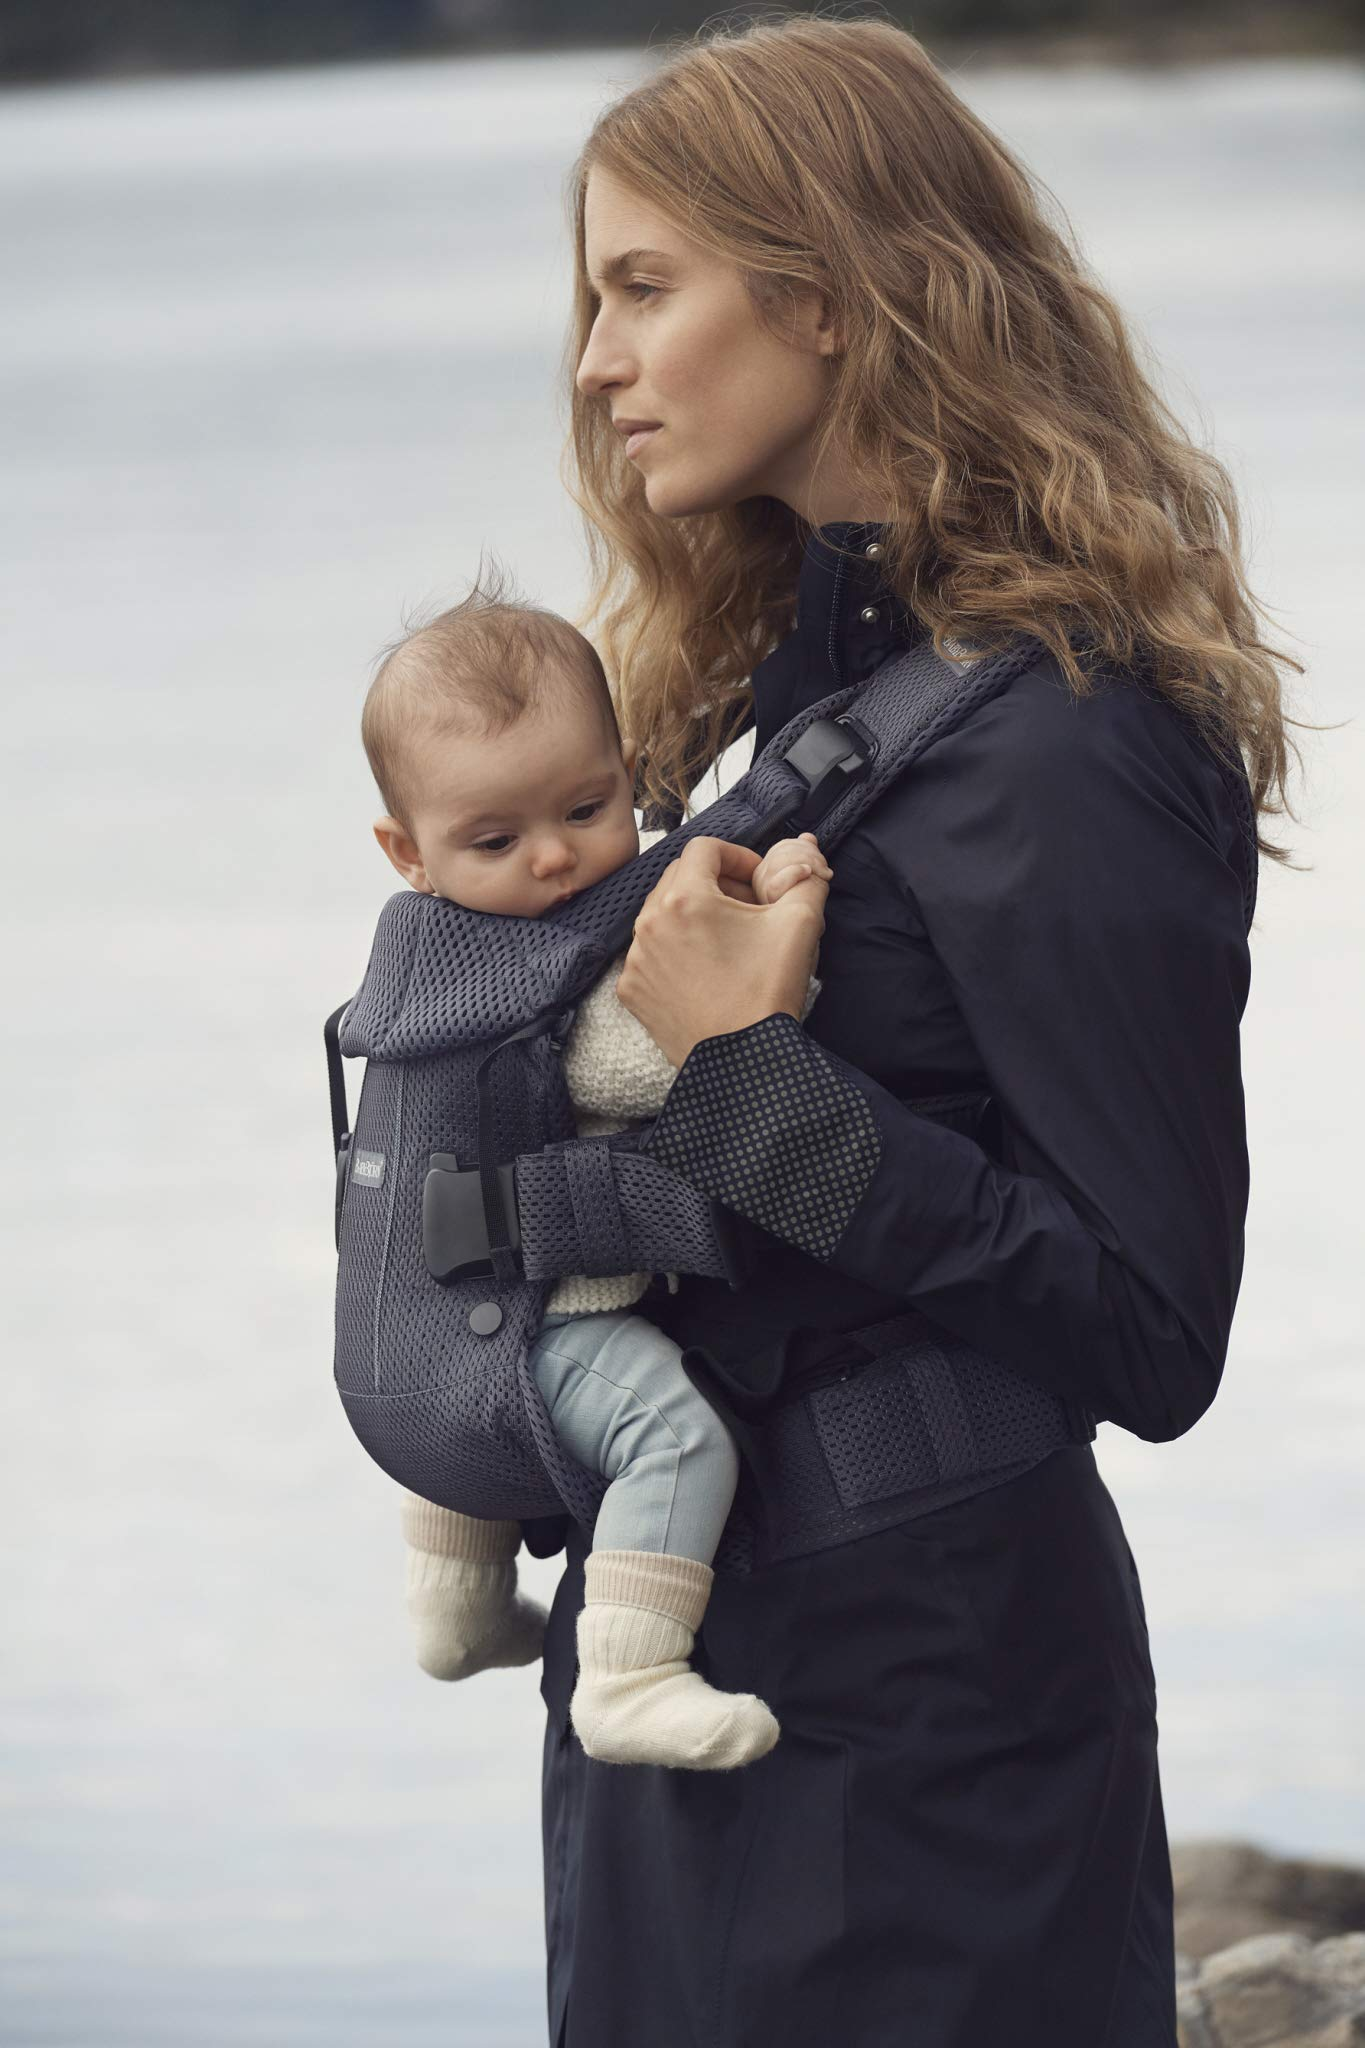 BABYBJÖRN Baby Carrier One Air, 3D Mesh, Anthracite, 2018 Edition Baby Bjorn The latest version (2018) with soft and breathable mesh that dries quickly Ergonomic baby carrier with excellent support 4 carrying positions: facing in (two height positions), facing out or on your back 5